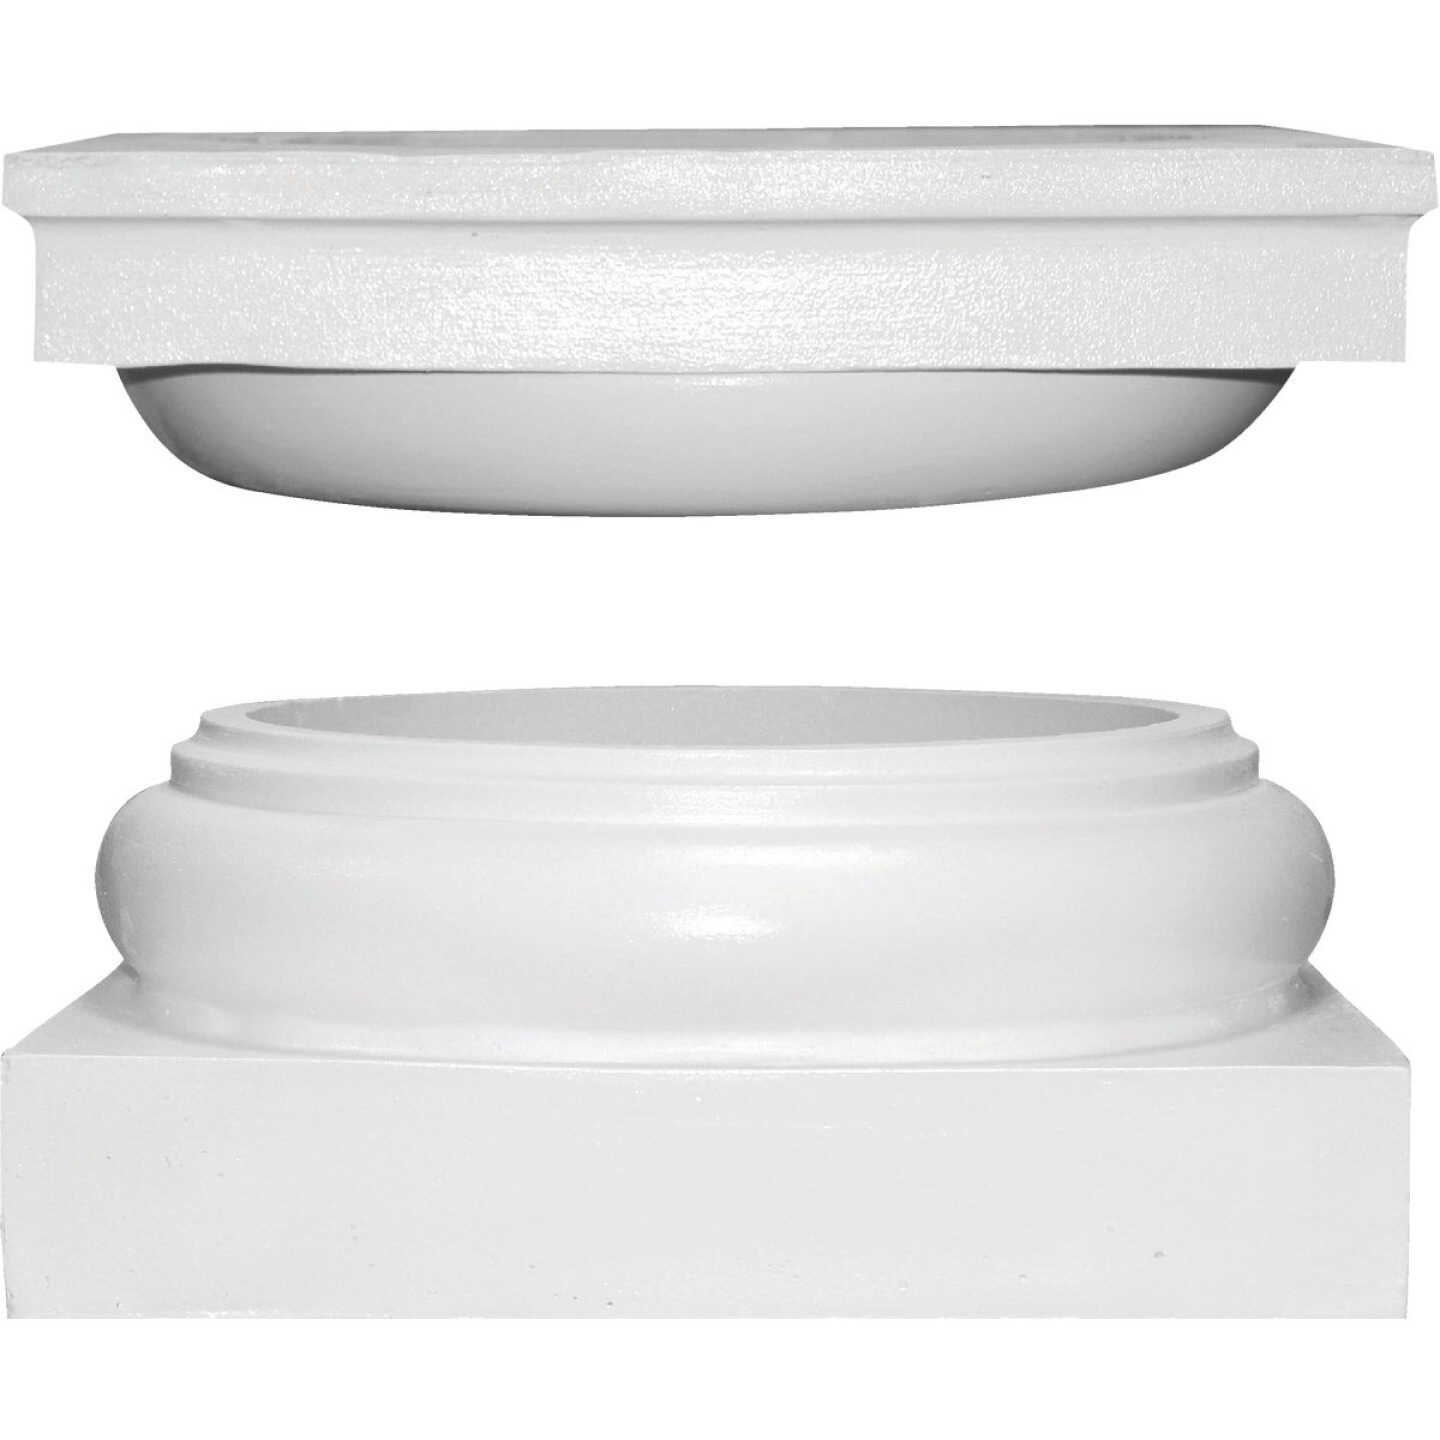 Crown Column Cap 11-15/16 In., Base 13-1/8 In. Unfinished Plastic Round Cap & Base Set Image 1